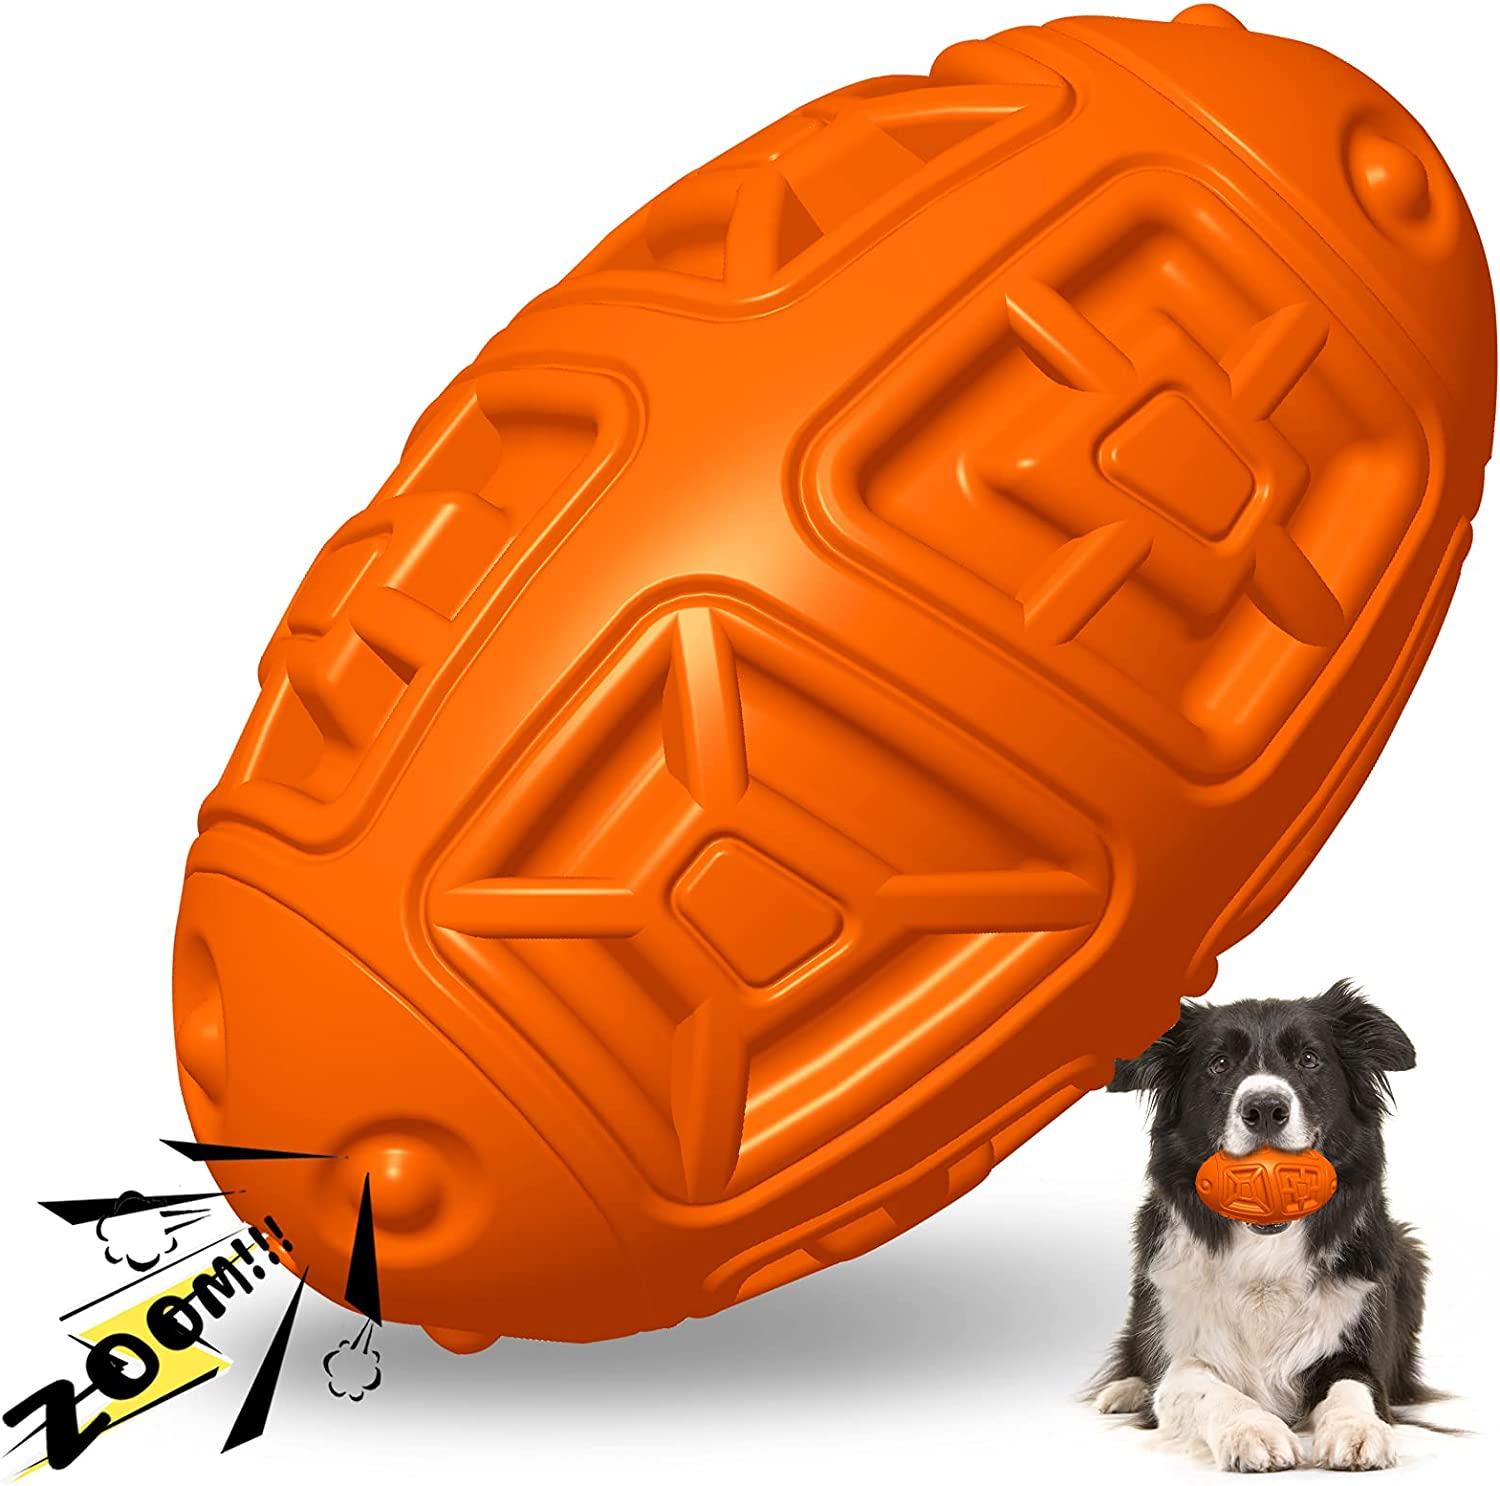 Jemesx Dog Squeaky Toy for Import Large Toys Animer and price revision Breed Durable Chew Al